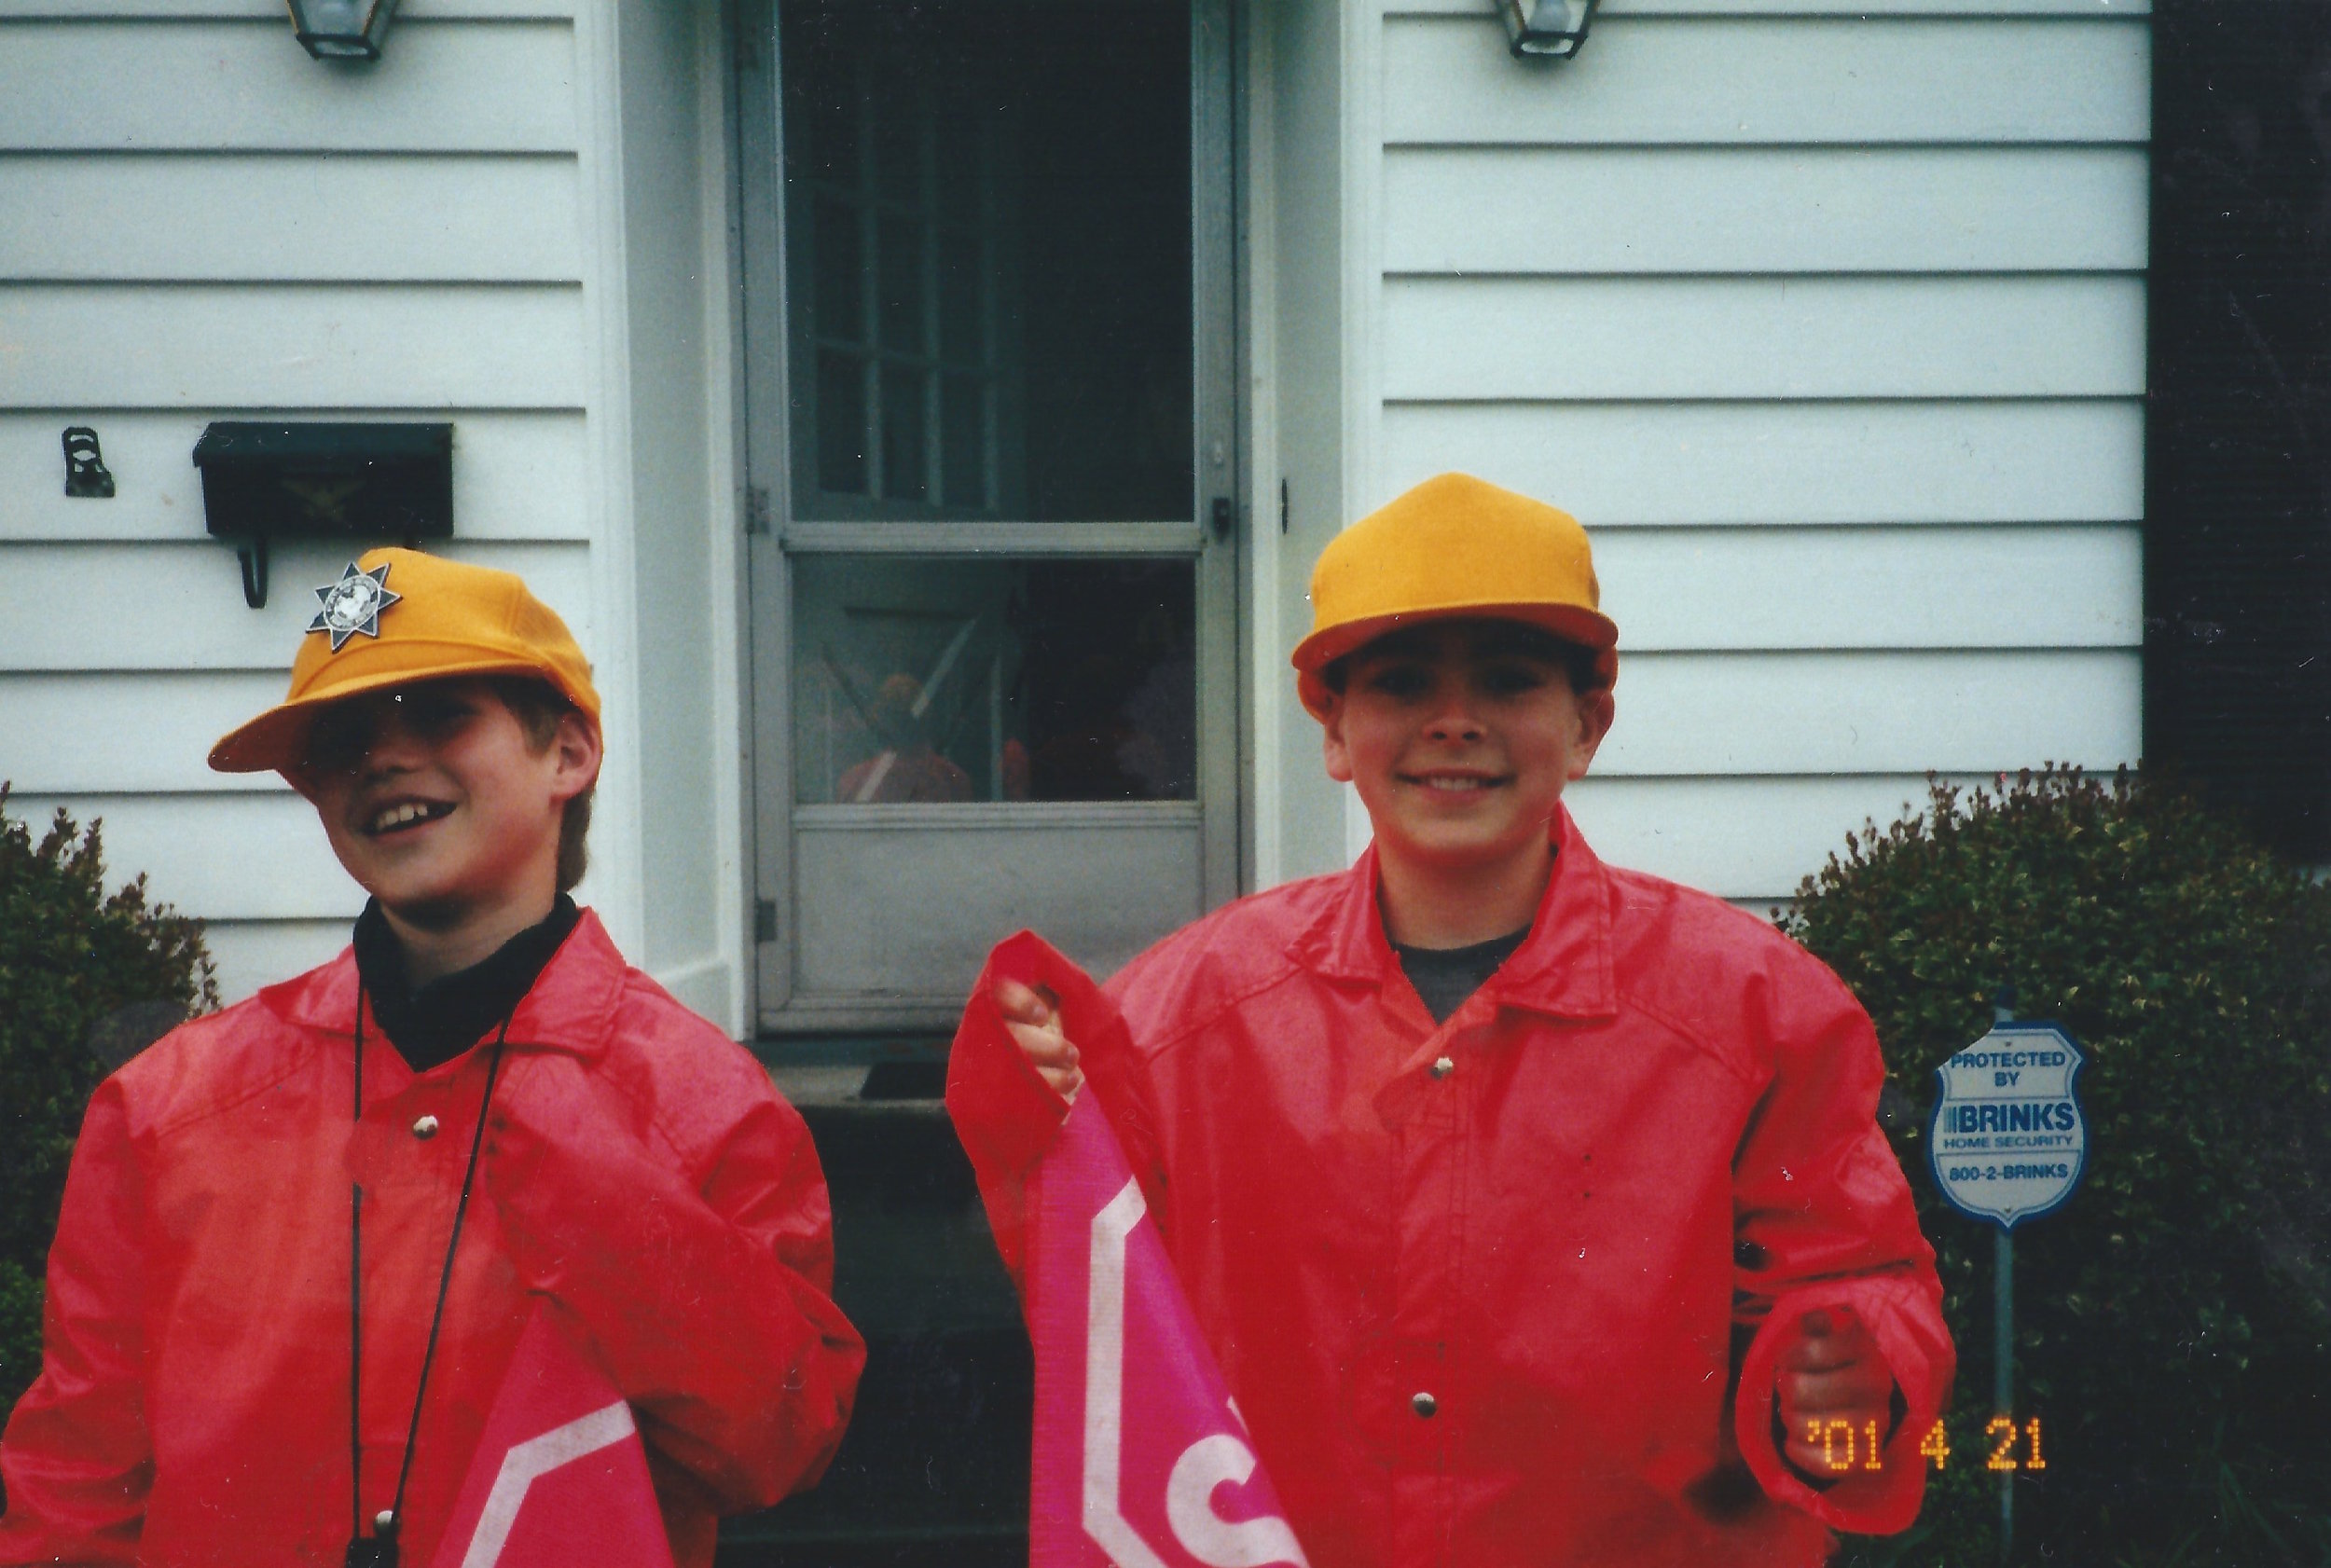 Roby and Ariel working their first job together: Glencoe Elementary School safety patrol, 2001.